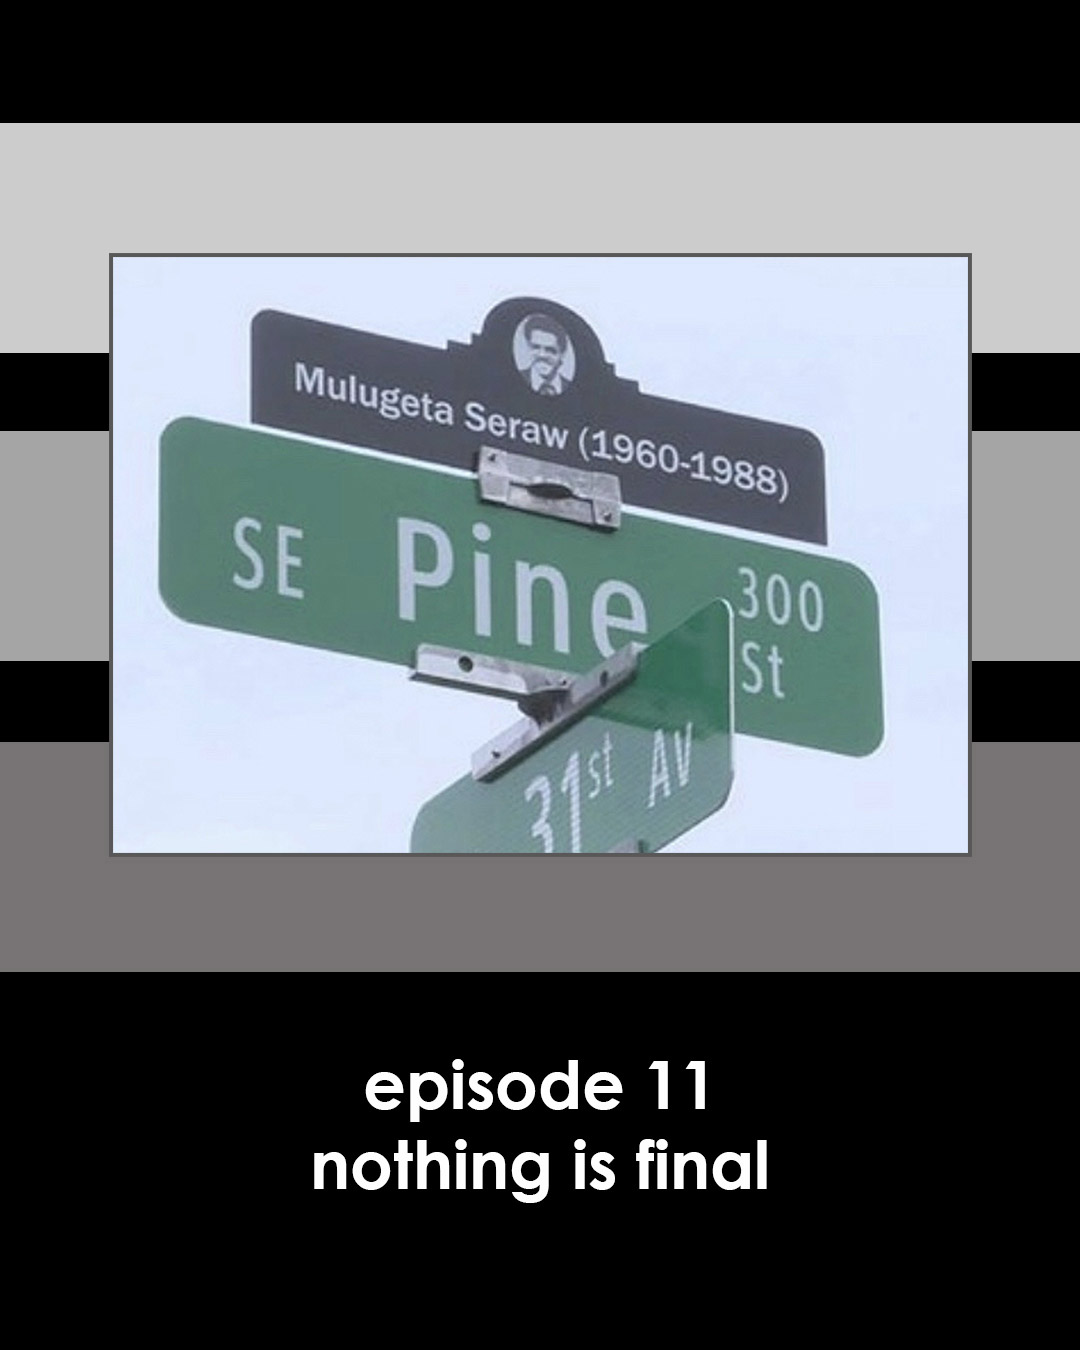 a picture of a Portland street sign and memorial to Mulugeta Seraw with the words below: Episode 11 Nothing is Final